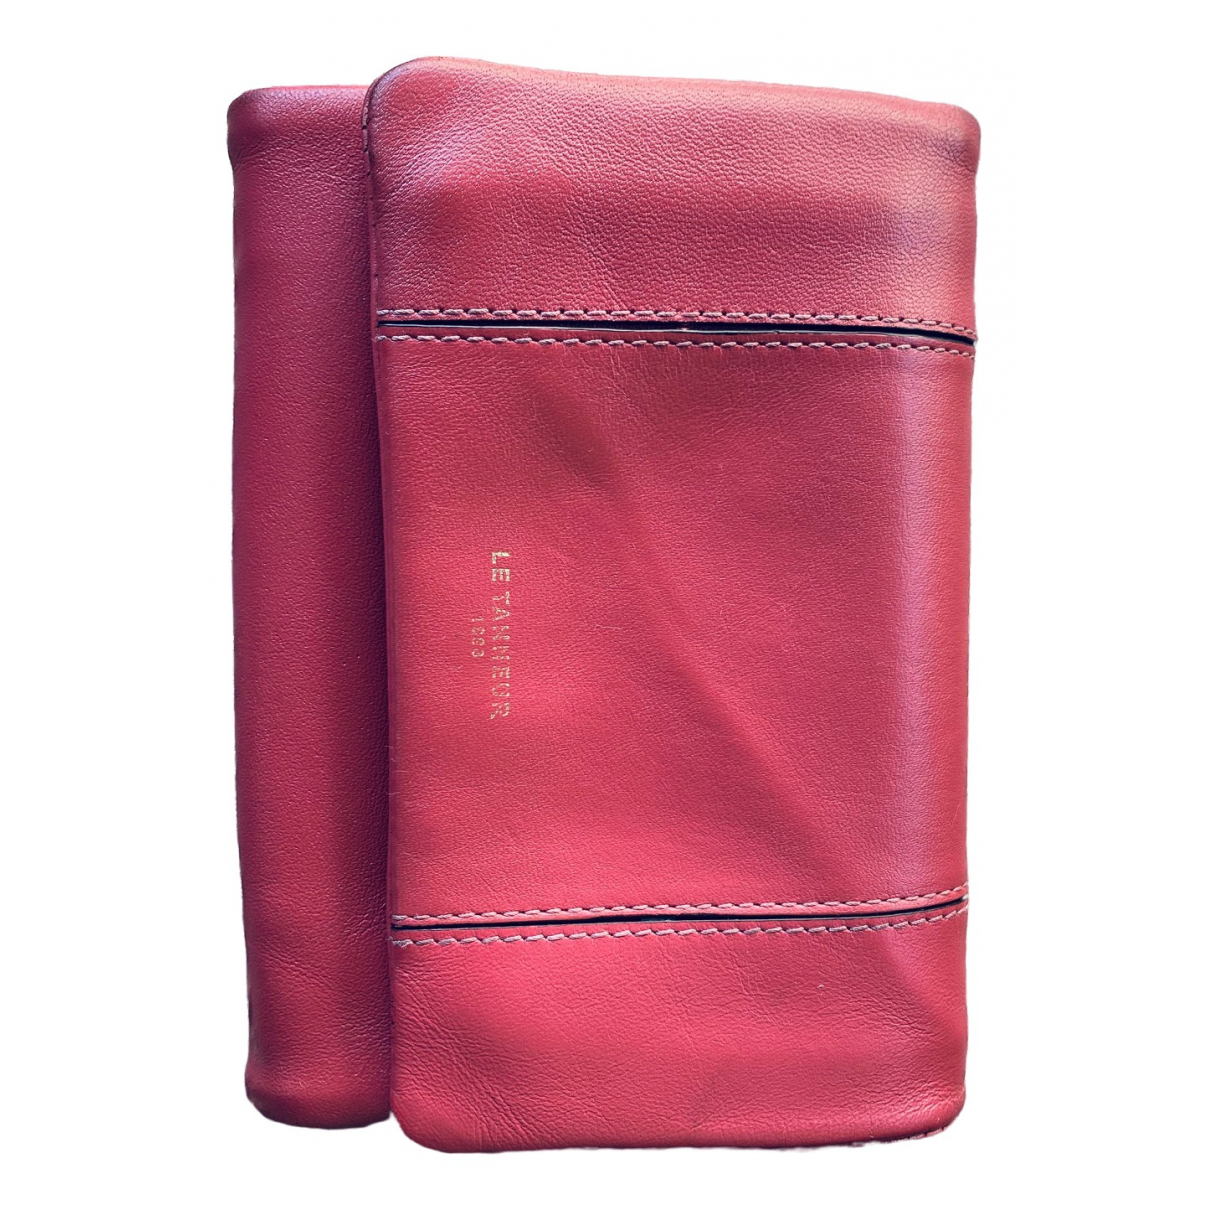 Le Tanneur \N Pink Leather wallet for Women \N